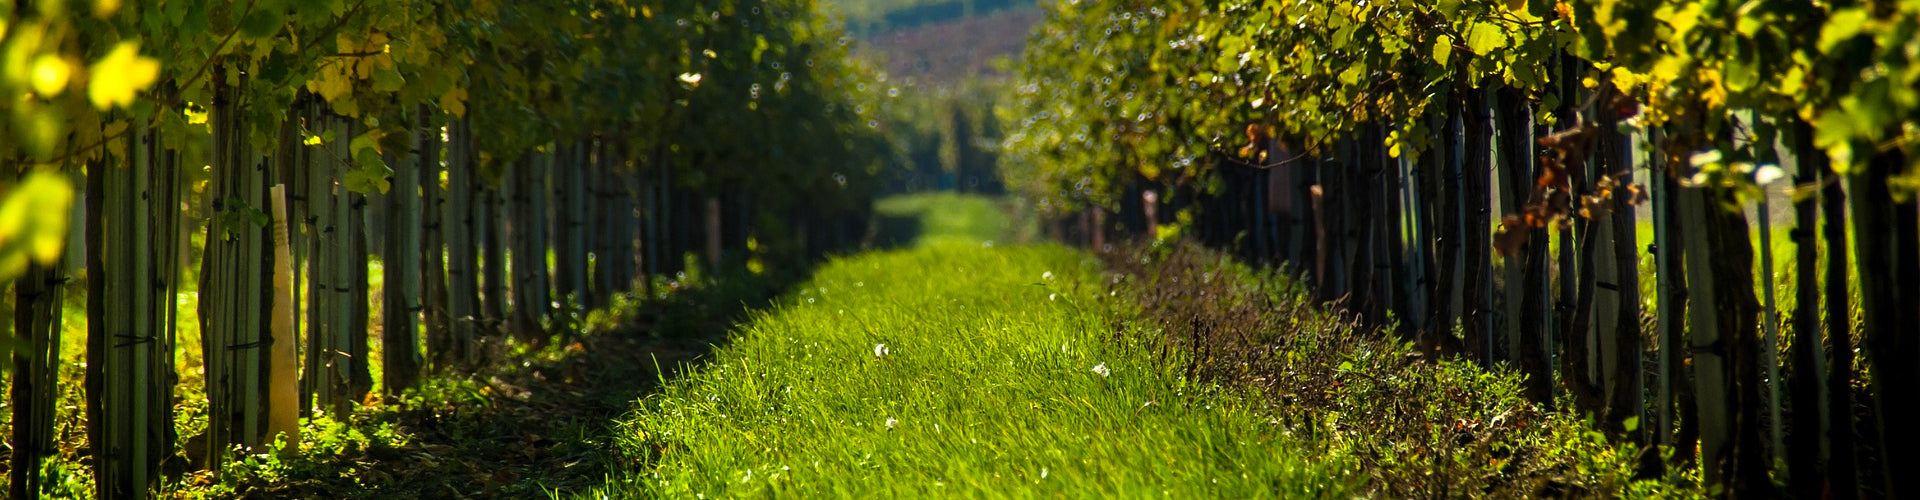 Organic vineyard with healthy grass and crop cover